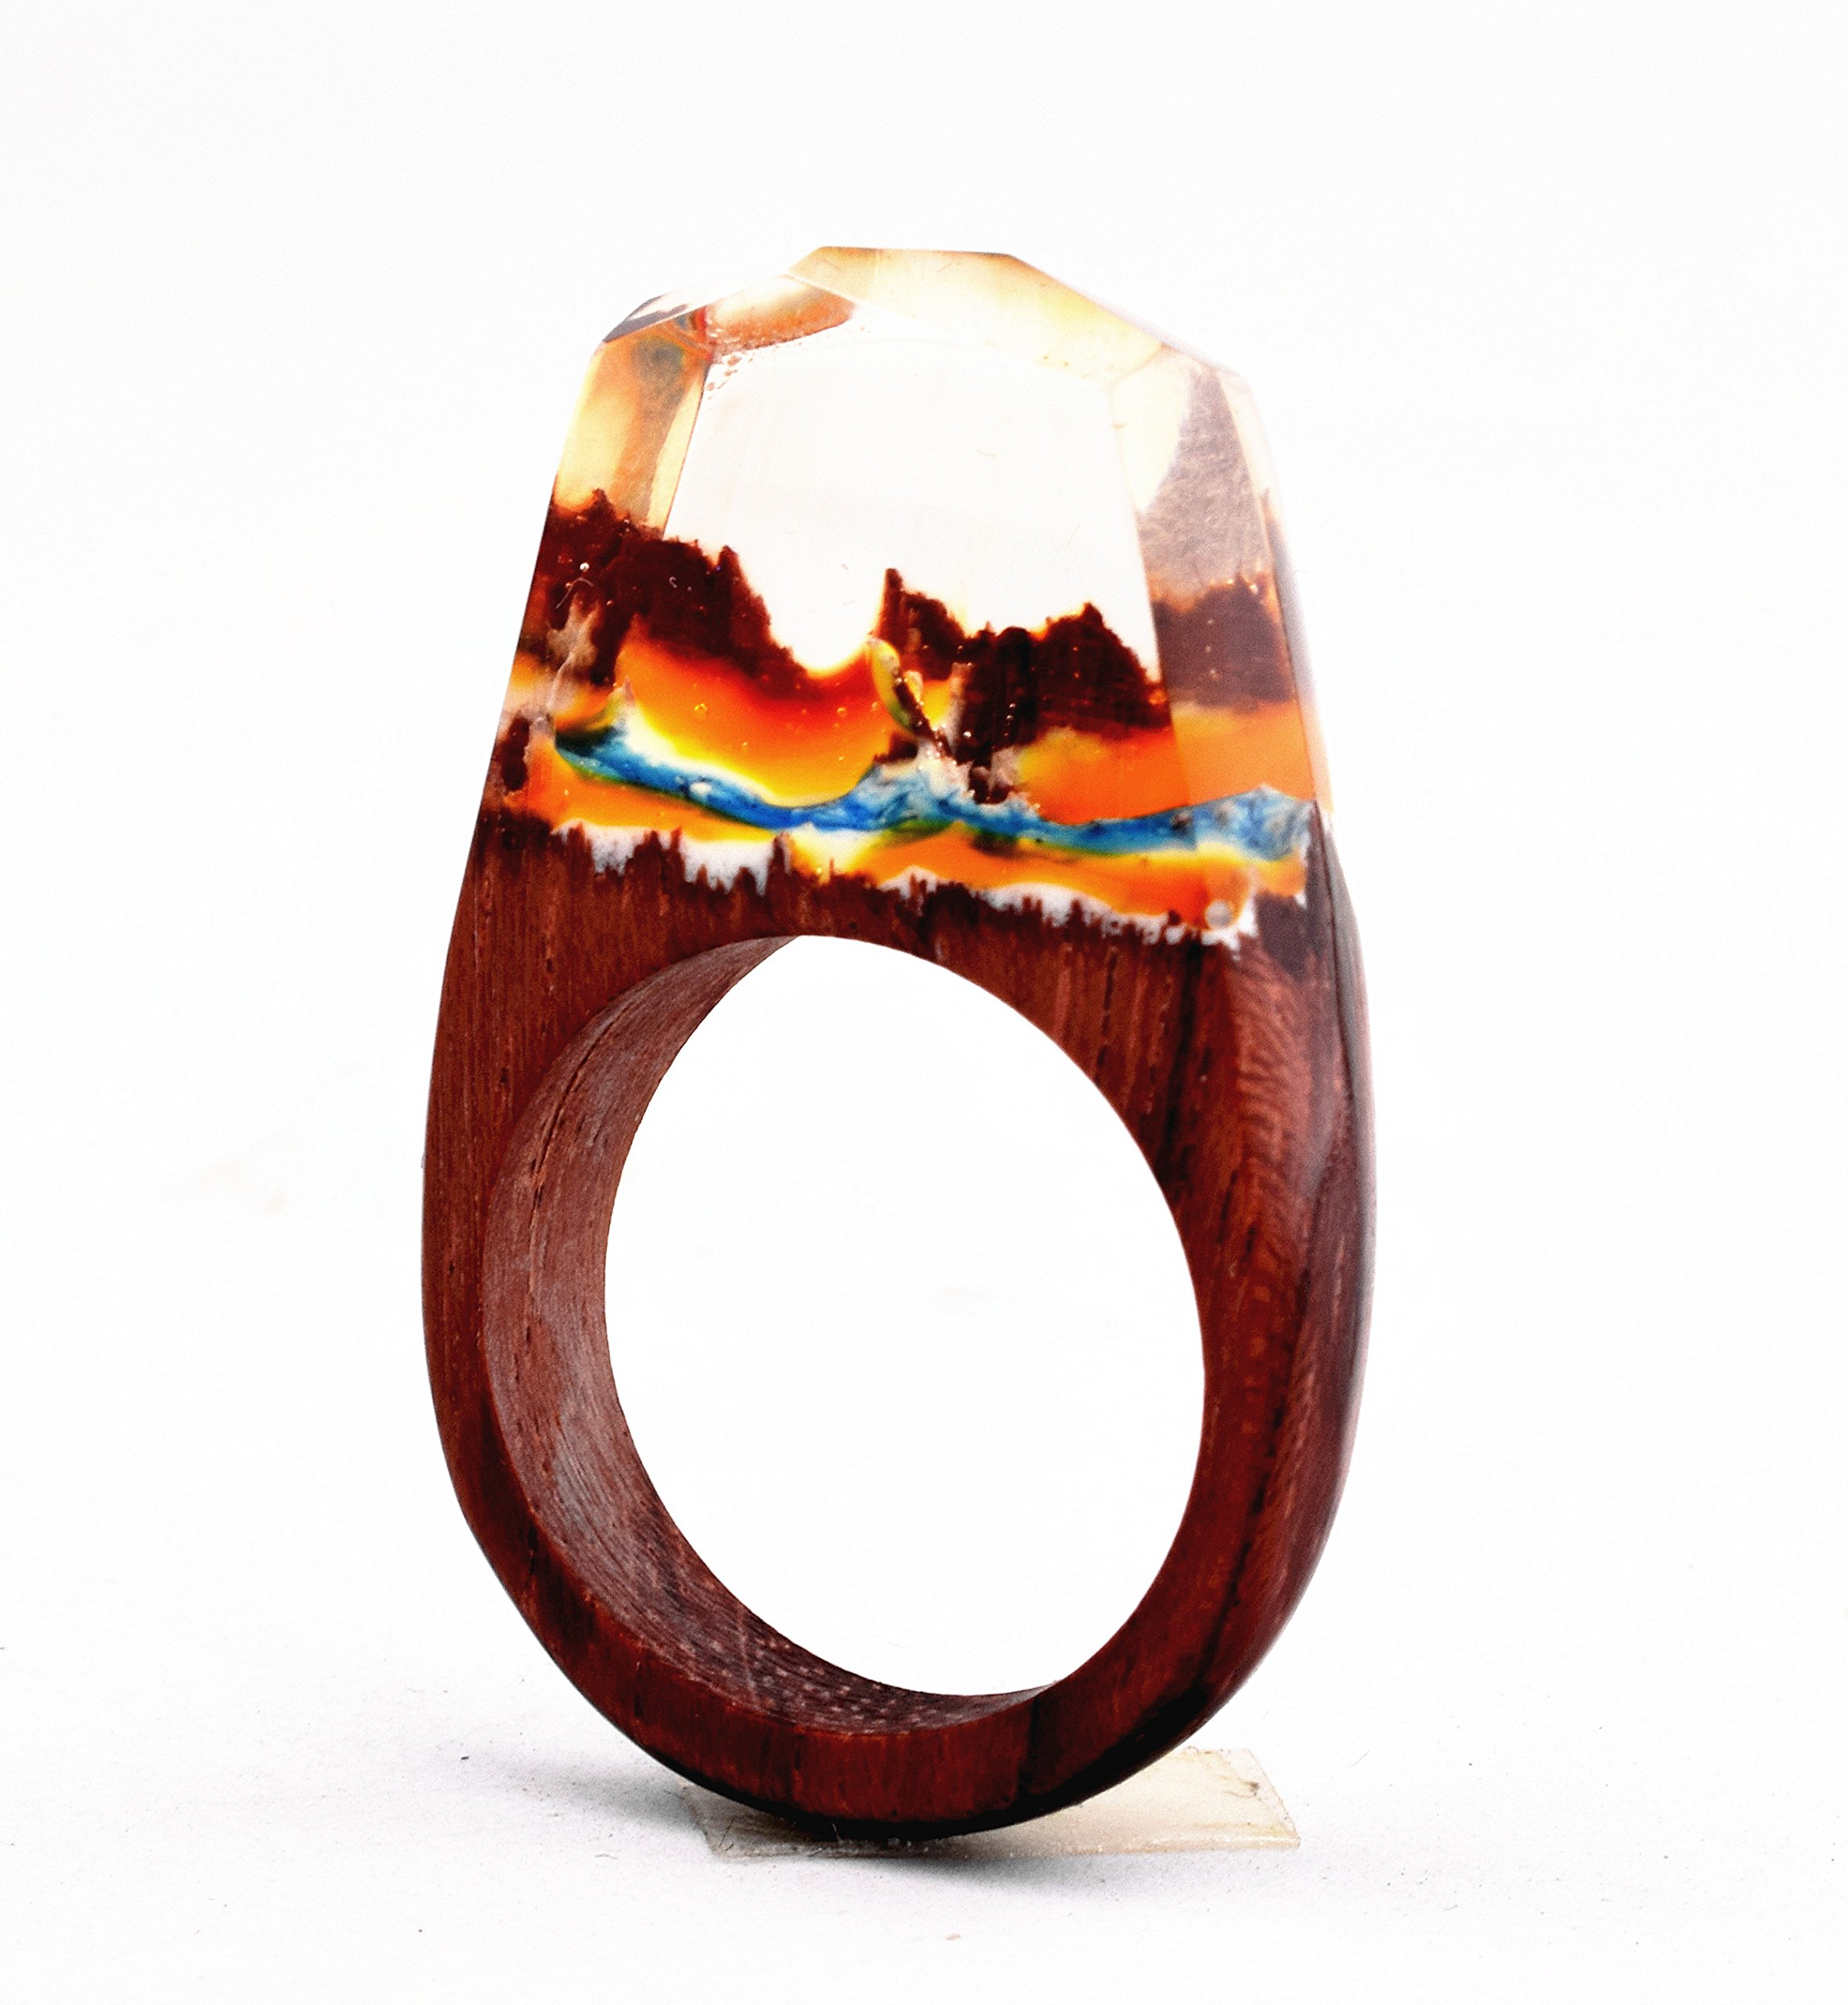 Heyou Love Handmade Wood Resin Ring With Volcano Scenery Landscape Inside Jewelry by Heyou Love (Image #4)